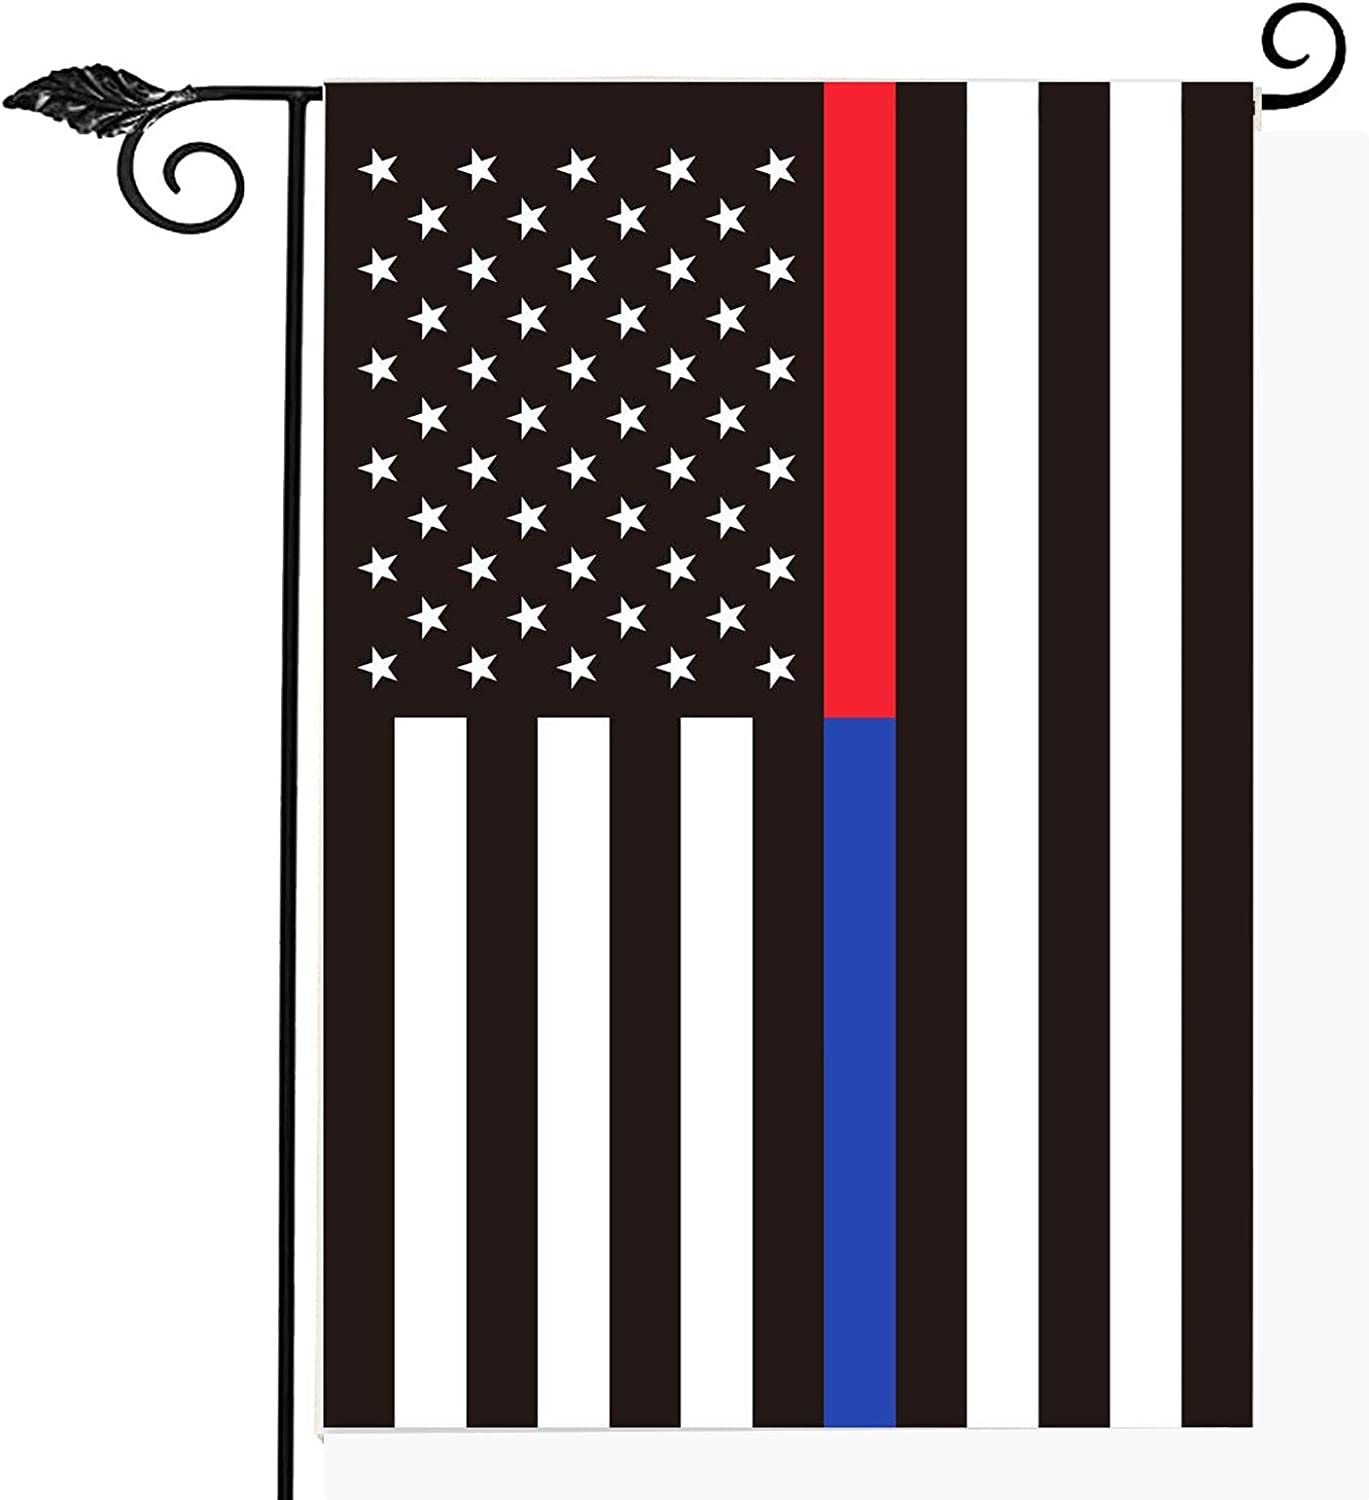 Red Blue Line American Garden Flag- Support Firefighter Police USA Flags 12x18 Inch for Firemen Law Enforcement